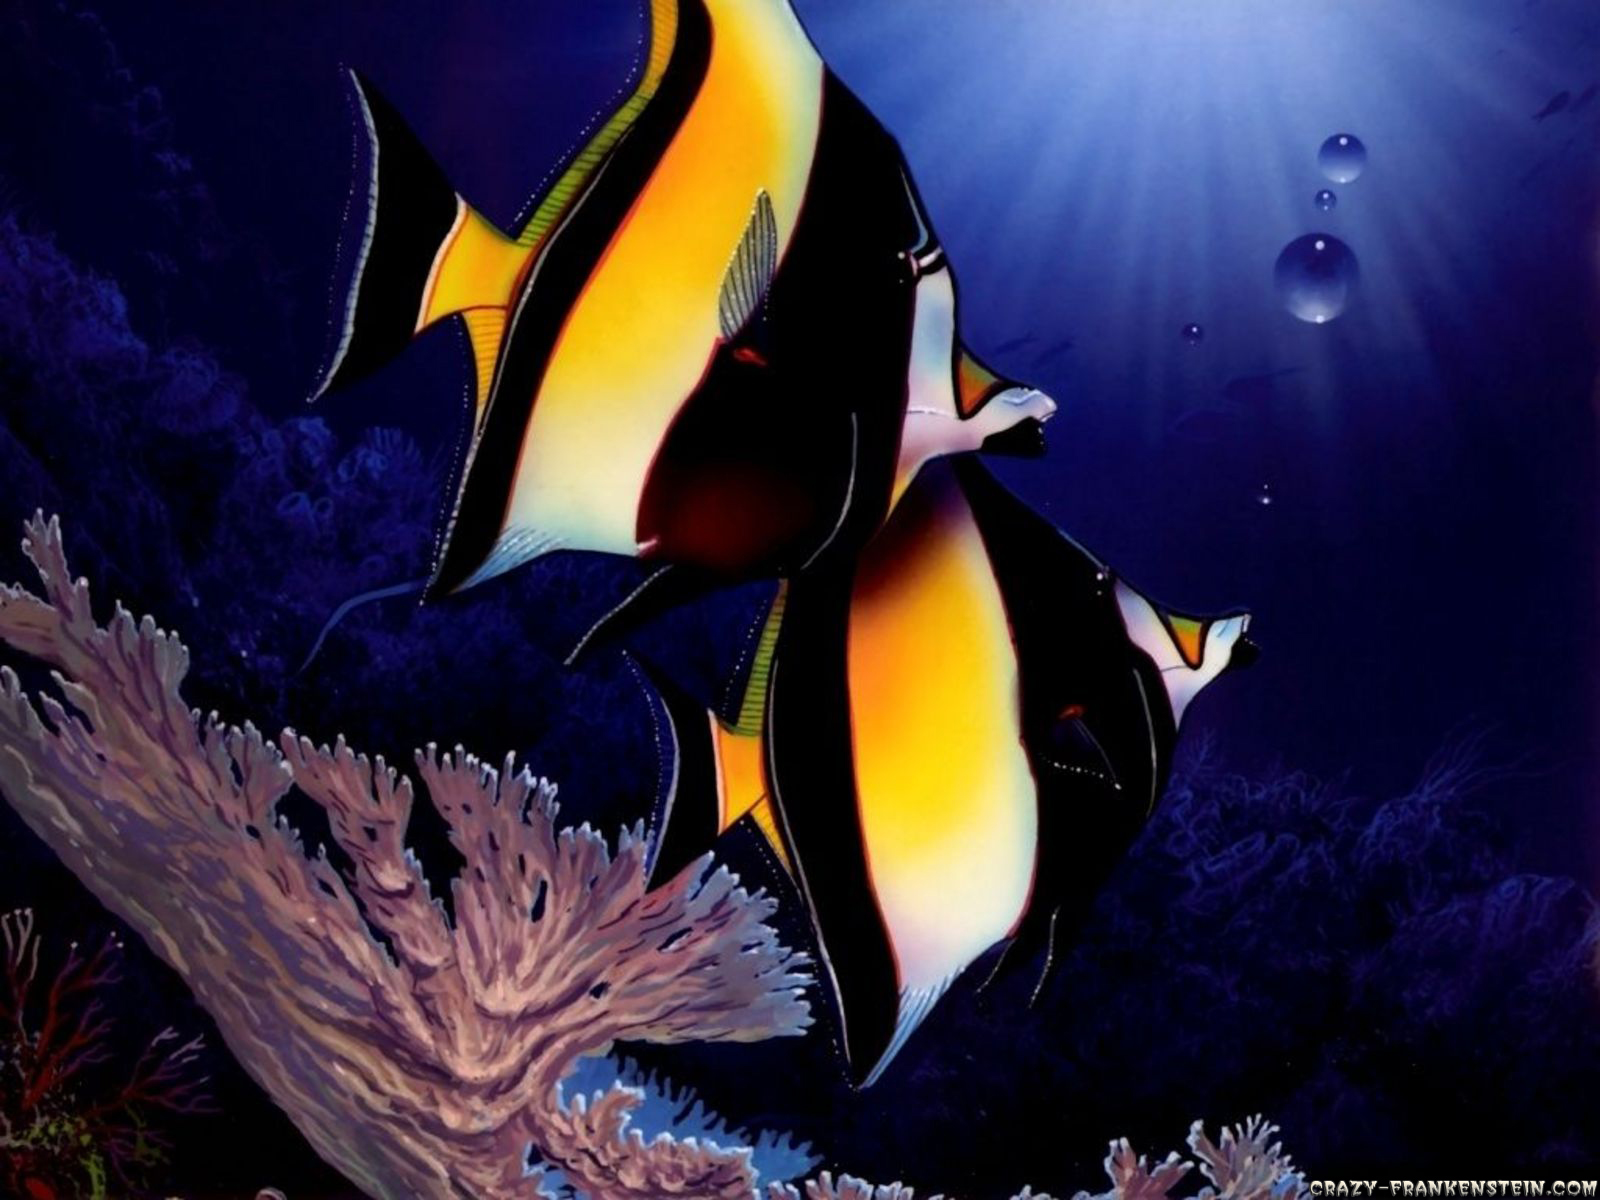 http://3.bp.blogspot.com/--E5vUPPx5sY/Td2A9TQW8xI/AAAAAAAAD78/6FXFZzrfVfE/s1600/animals-under-water-fish-wallpapers-1600x1200.jpg